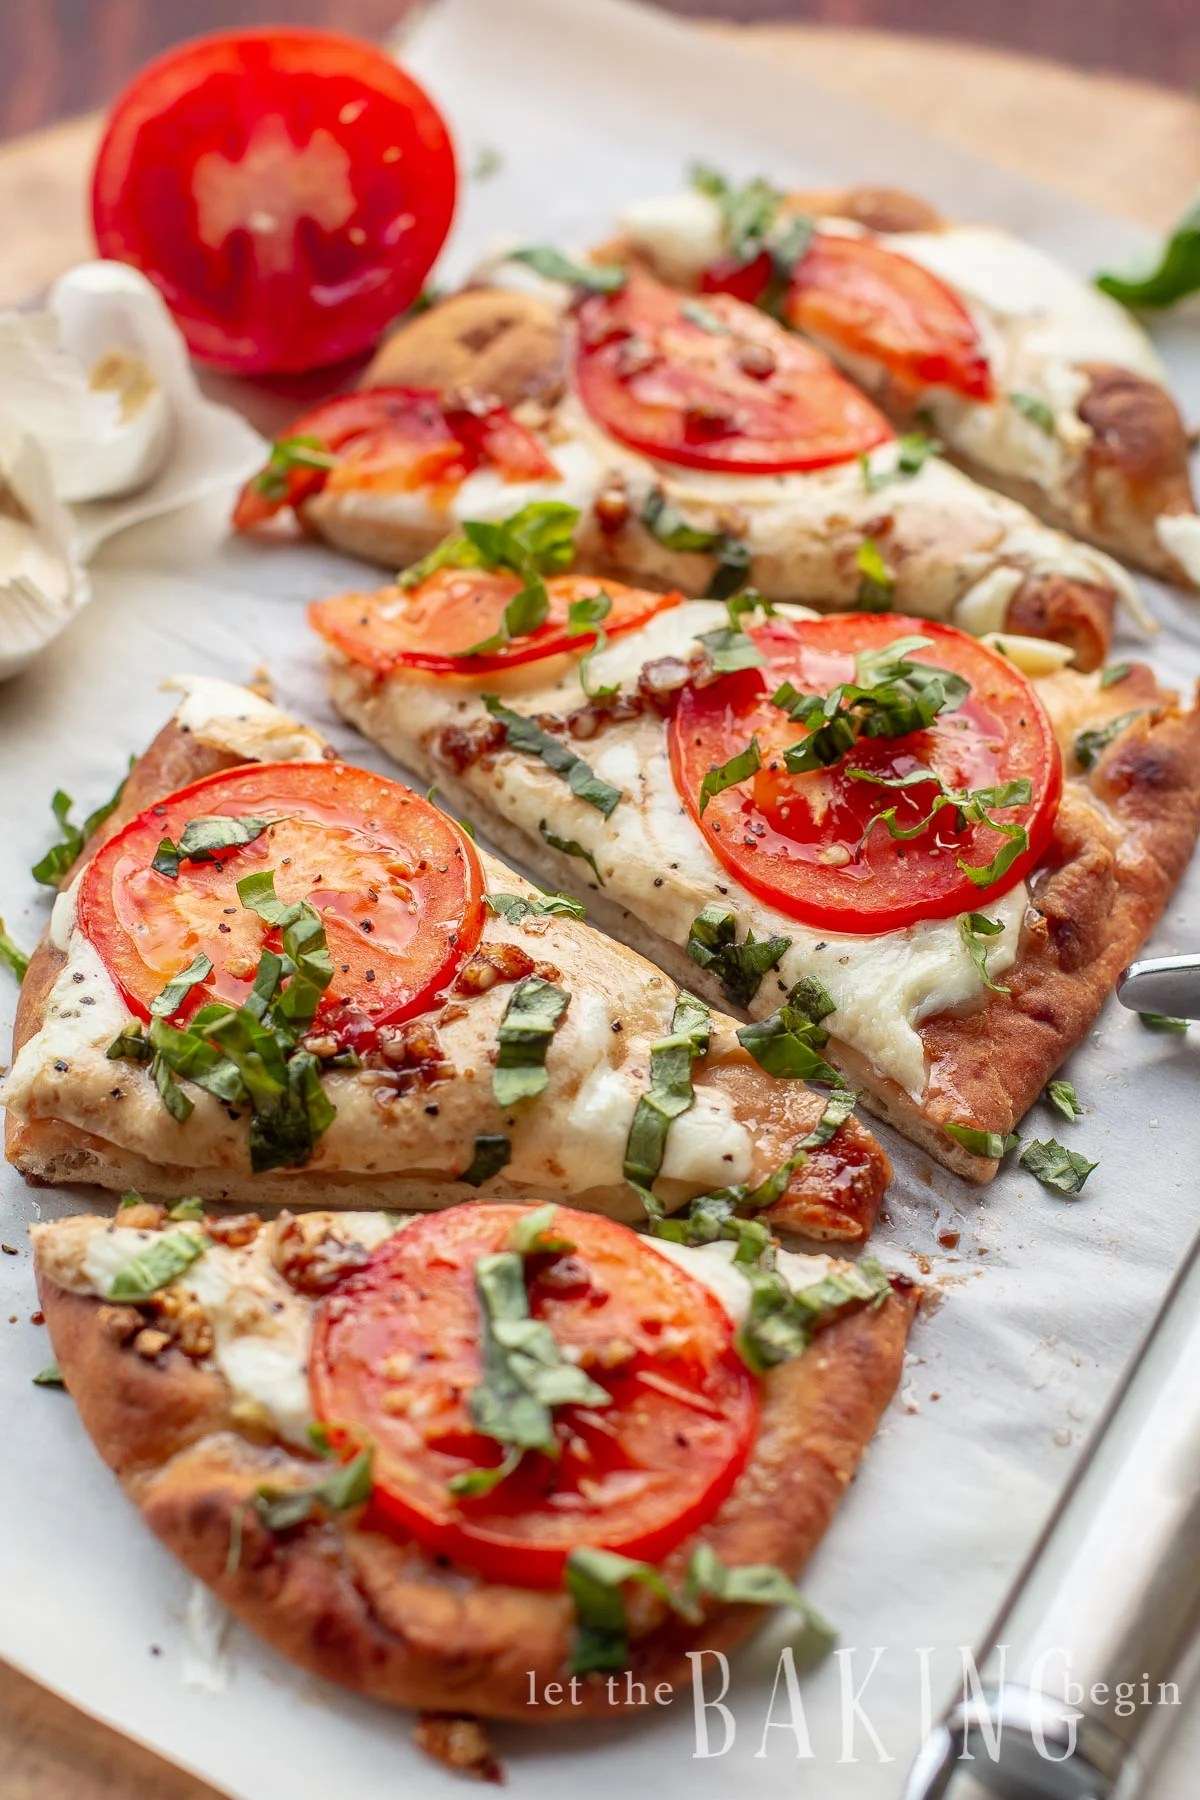 15 Minute Margherita Flatbread Pizza - delicious, easy recipe for a homemade pizza made with Naan Bread, Fresh Mozzarella, Tomatoes, Garlic and Basil that's great for busy weeknight dinners or parties.